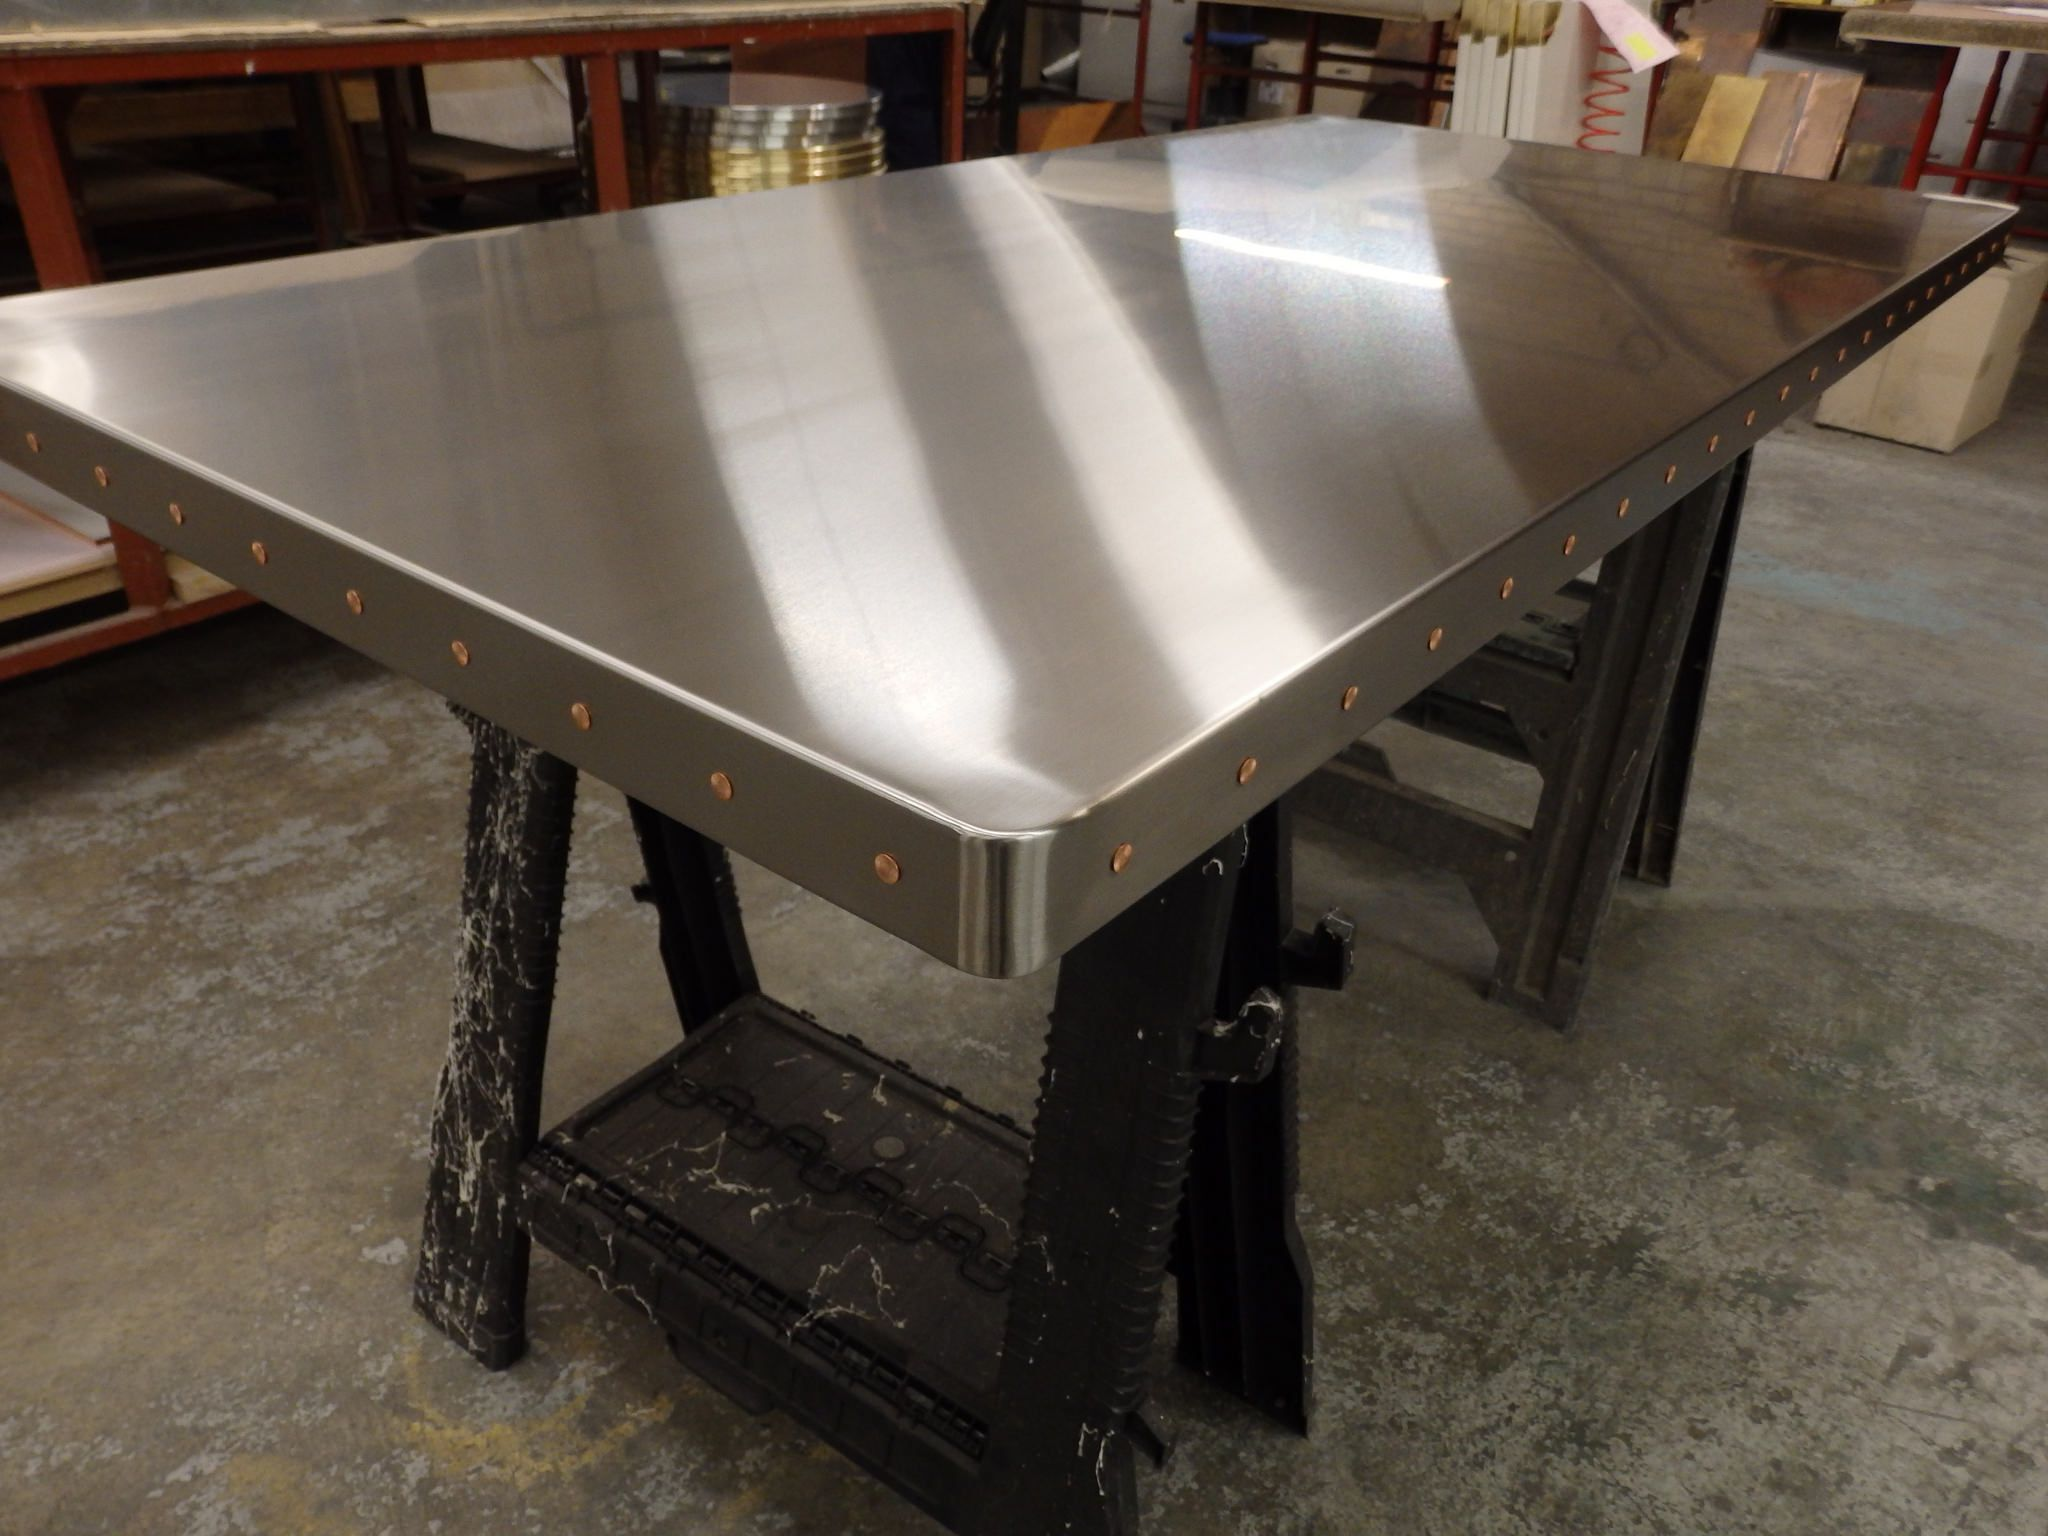 Gentil Https://flic.kr/p/ZUexS5 | Satin Stainless Steel Table Top With Copper  Rivets